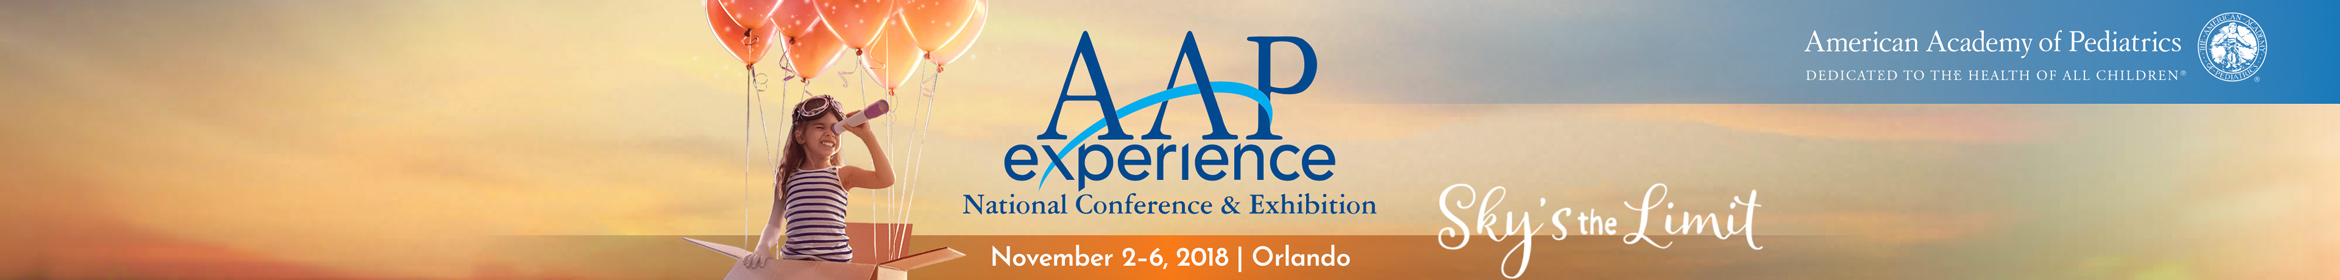 2018 AAP National Conference & Exhibition Main banner